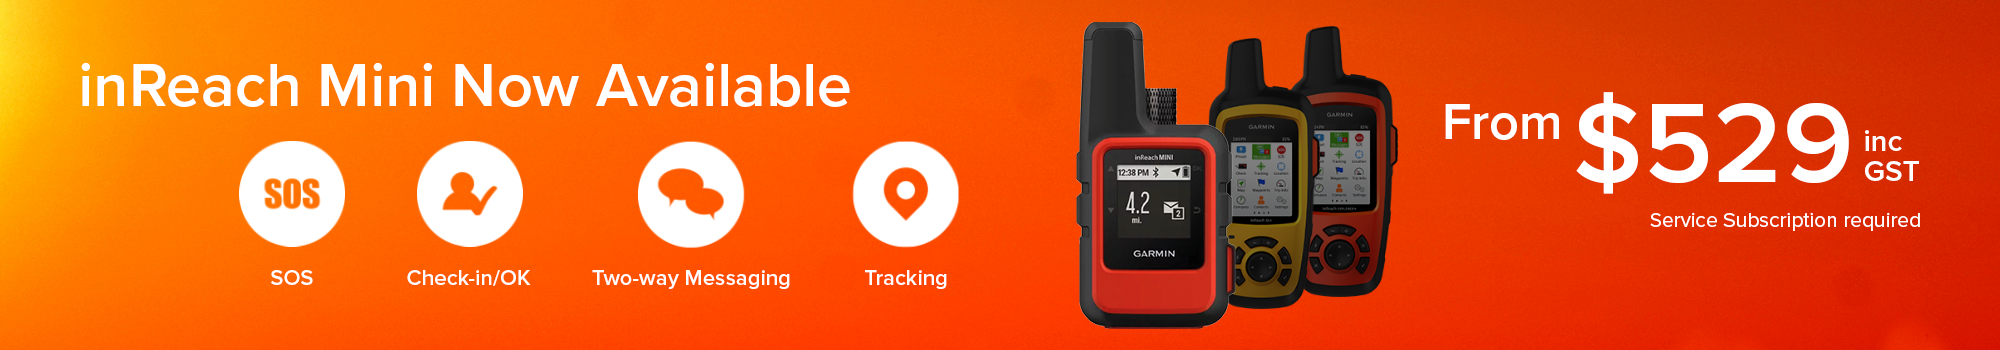 inreach mini now available. from $529 inc gst. subscription required.